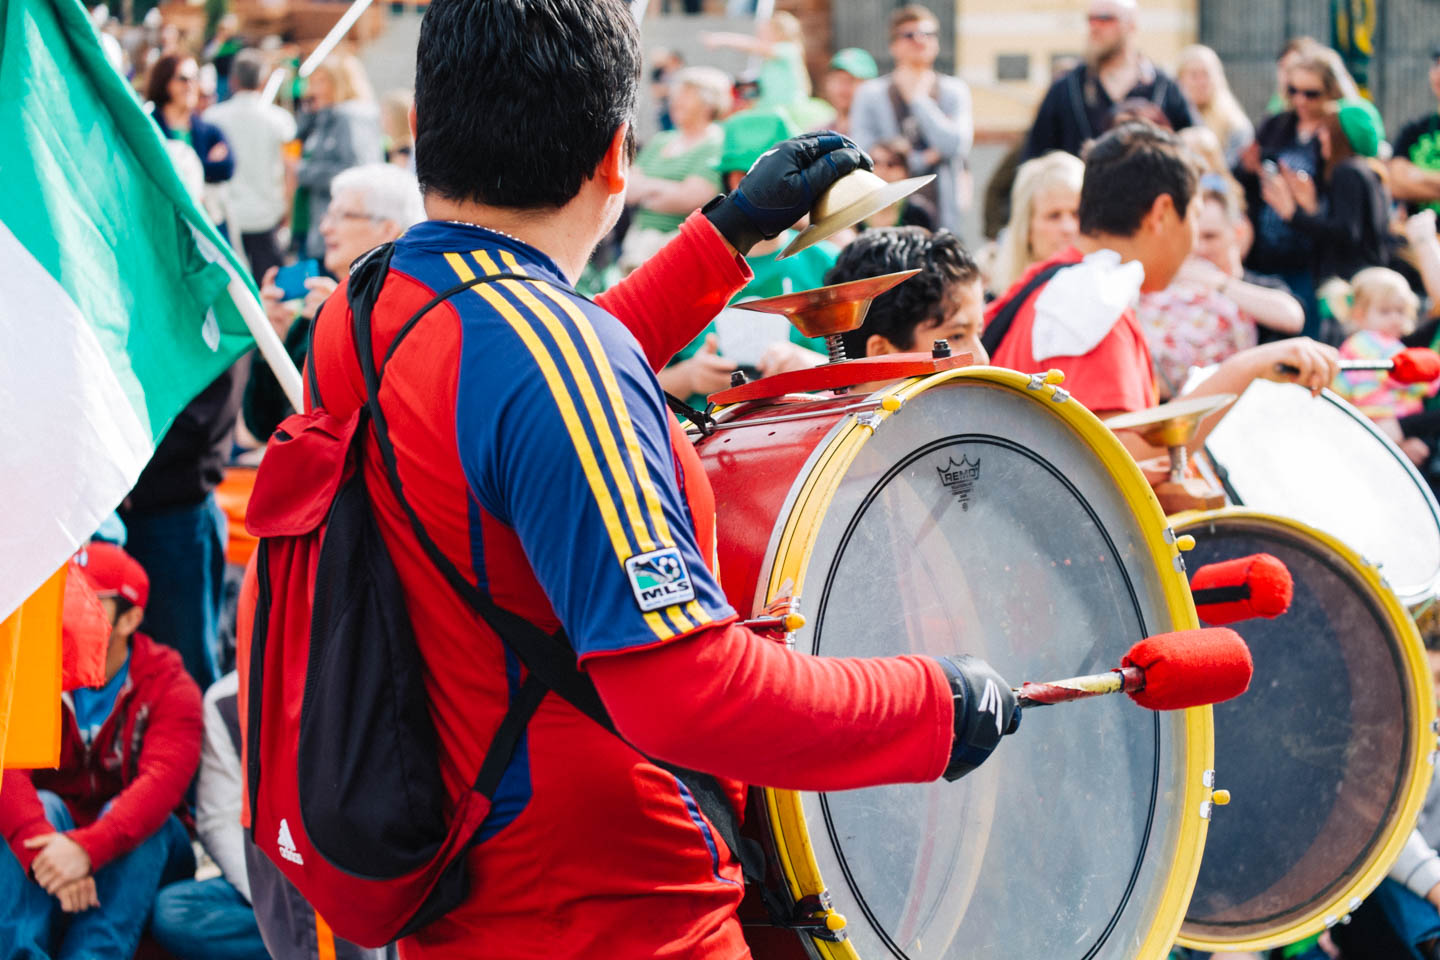 Drummers of the Real Salt Lake soccer team